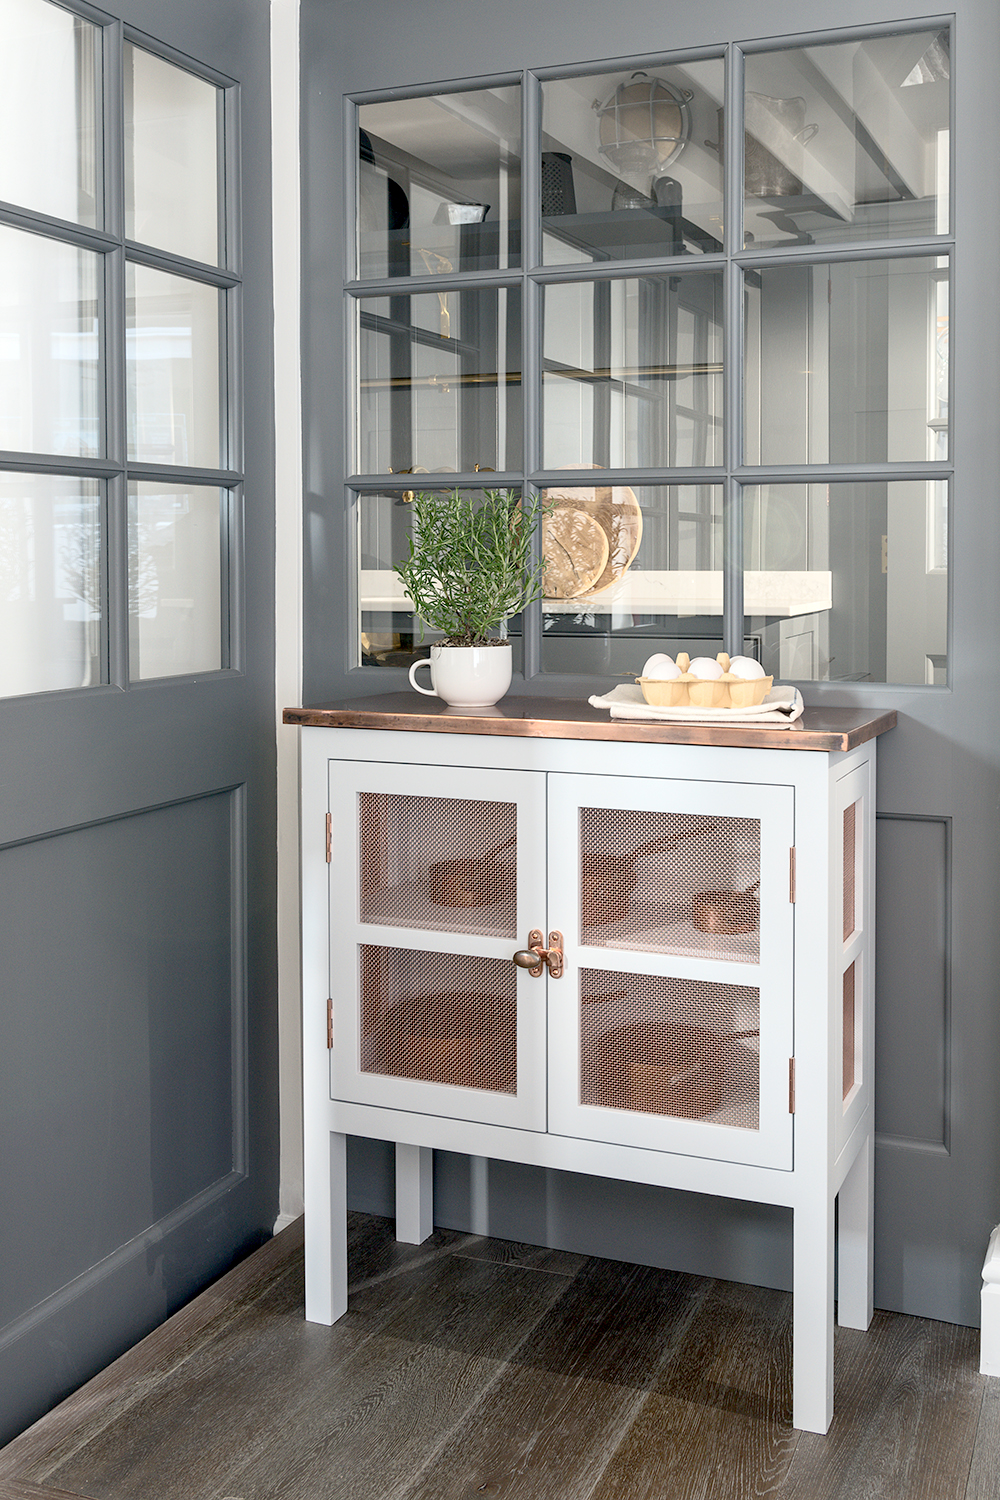 Dairy cabinet with copper mesh panels and copper handles with frames painted light grey and an ageing copper worktop.